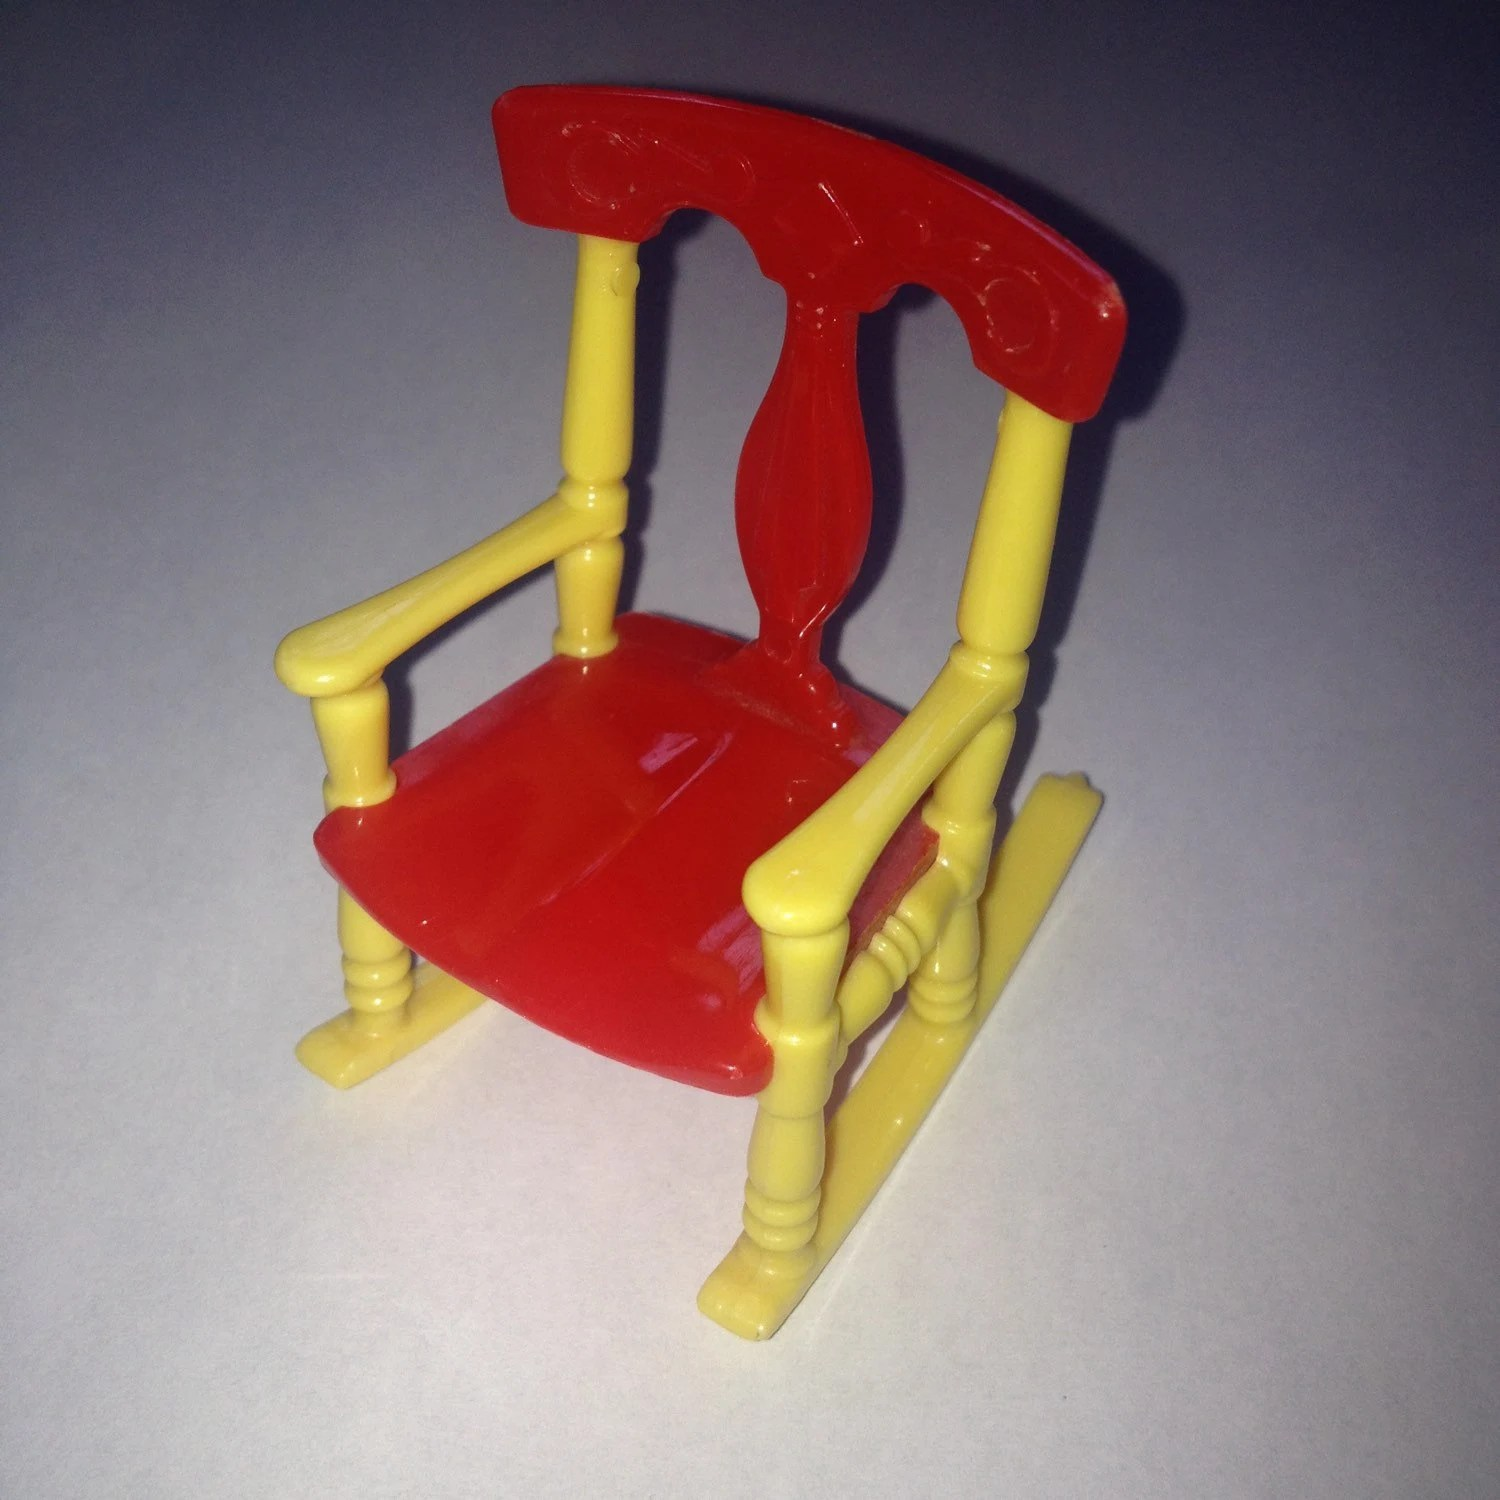 Plastic Rocking Chair Renwal Rocking Chair Vintage Plastic Dollhouse Furniture